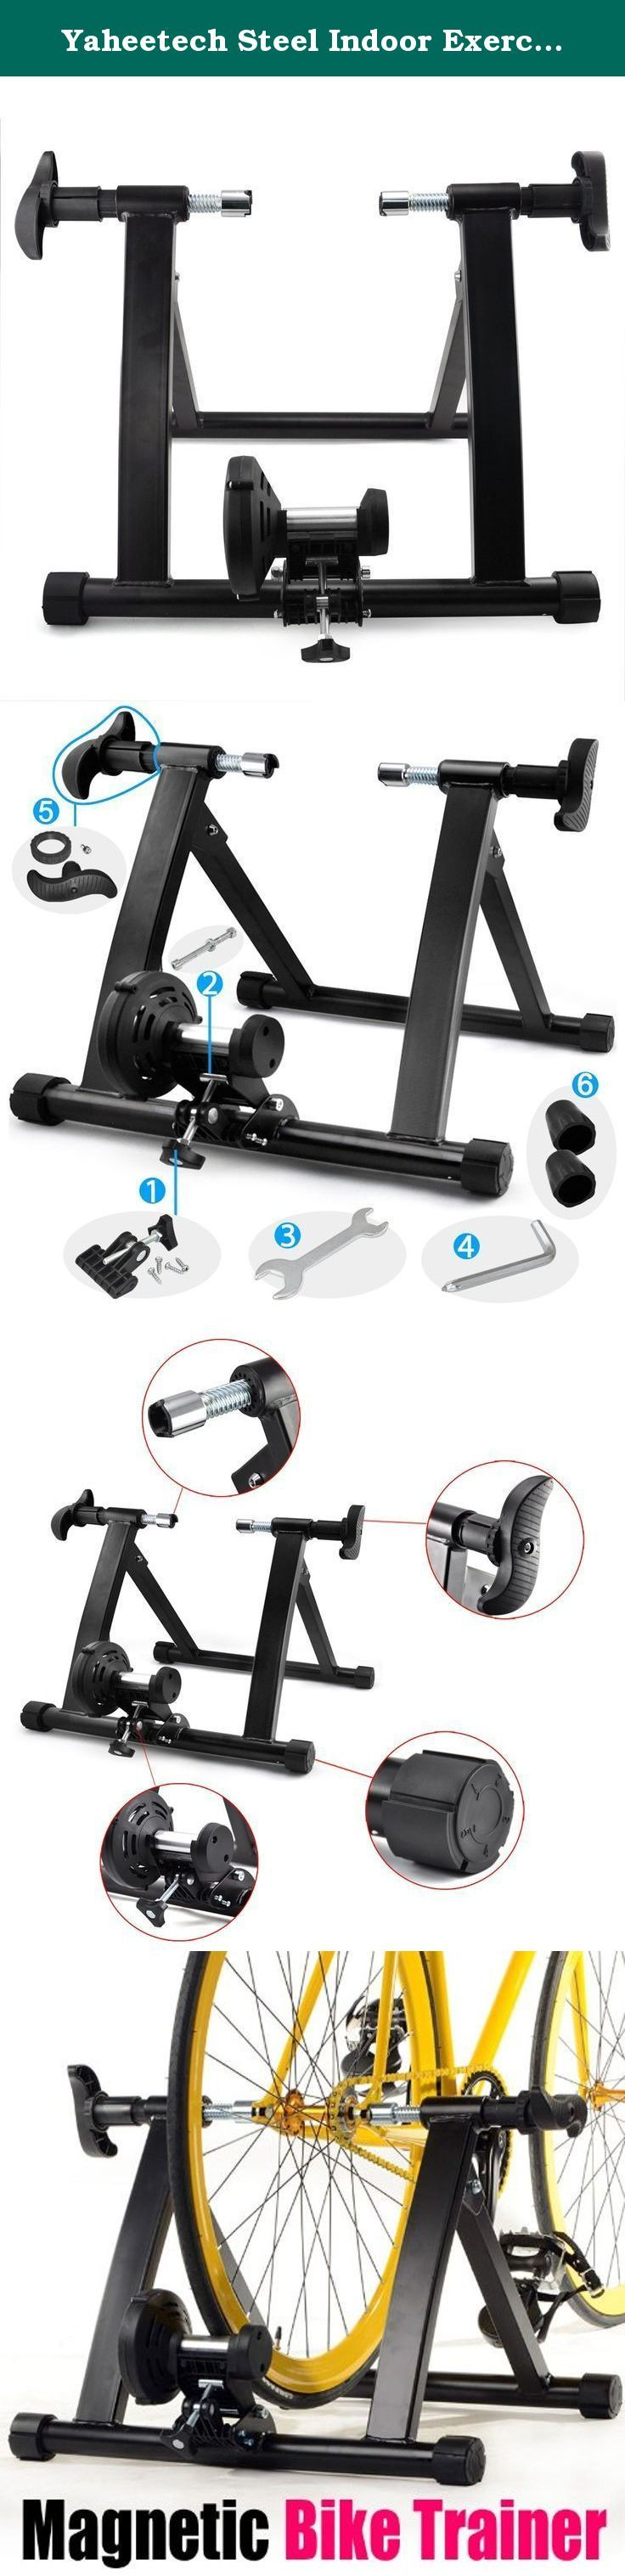 "Yaheetech Steel Indoor Exercise Bike Bicycle Trainer Stand Fit for bicycles with a wheel of 26"", 700C or wheel dia. between them. Features: Heavy duty stand frame with little noise. 100% brand new and high quality. Perfectly designed for indoor workout and training. Converts your bike into an indoor cycling trainer, no more worries about the weather, just cycling at home. Clamp locks down on quick release or bolt on rear wheels Fit for bicycles with a wheel of 26"", 700C or wheel dia…"